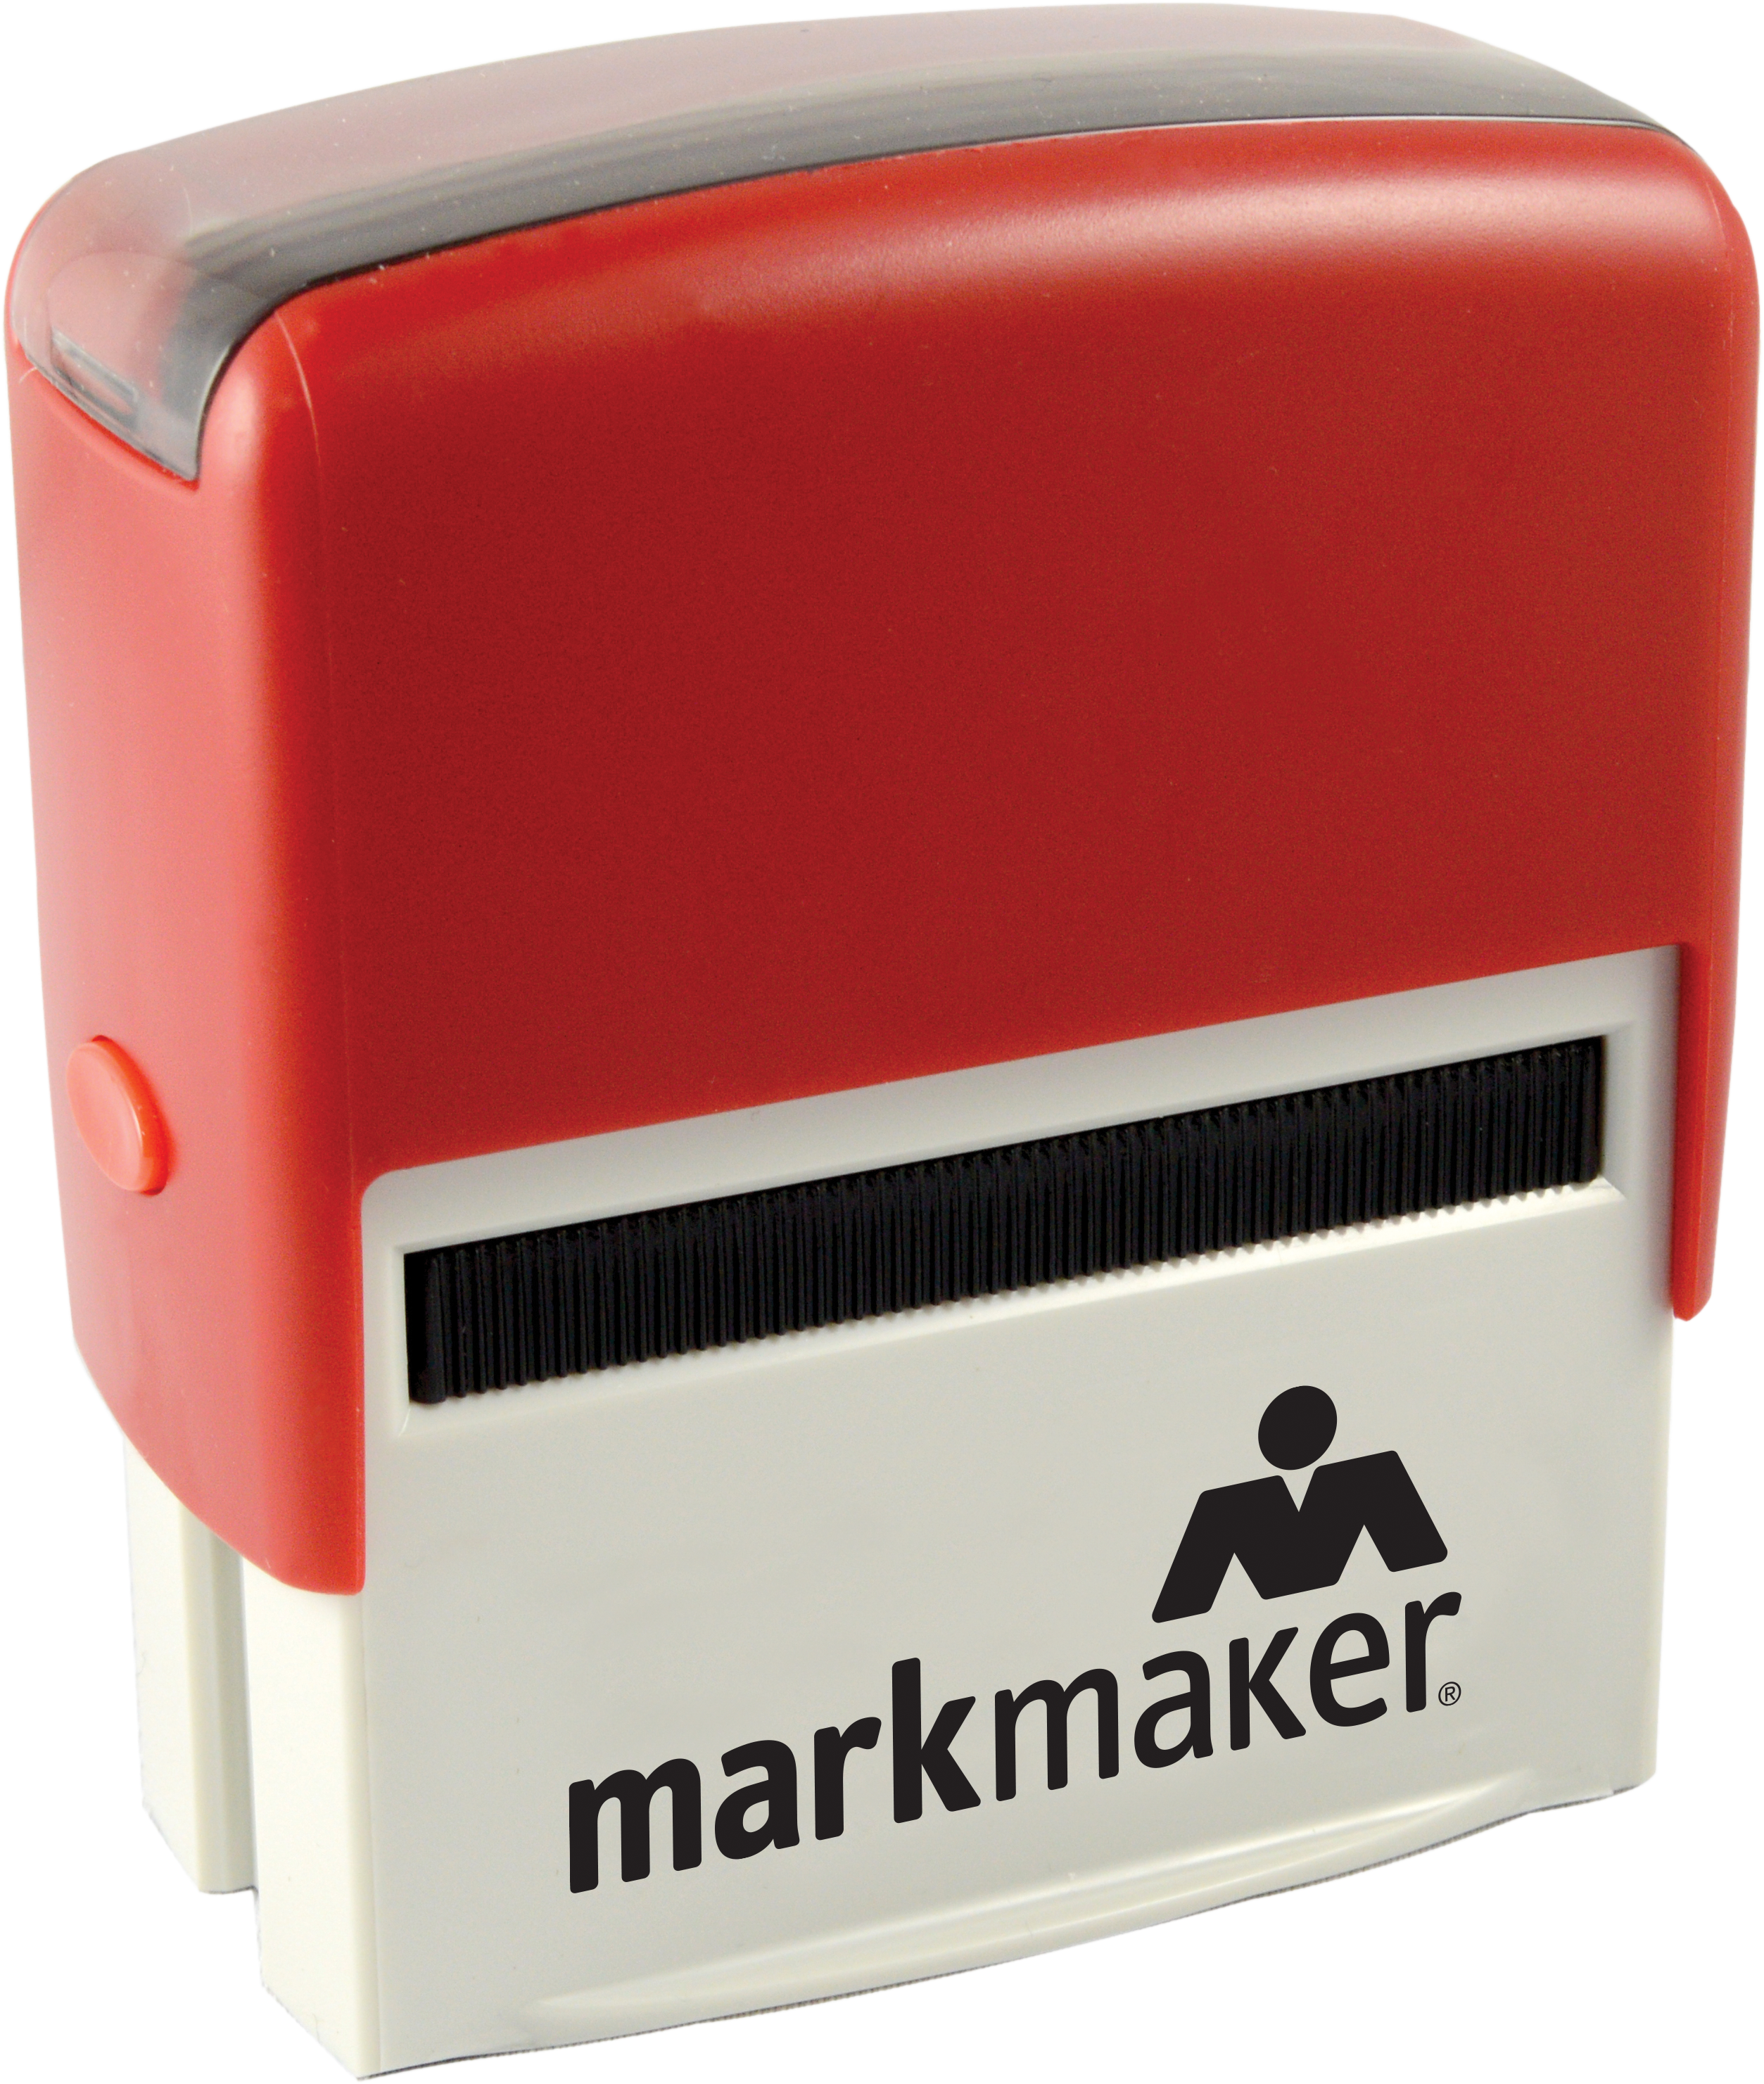 Medical Markmaker